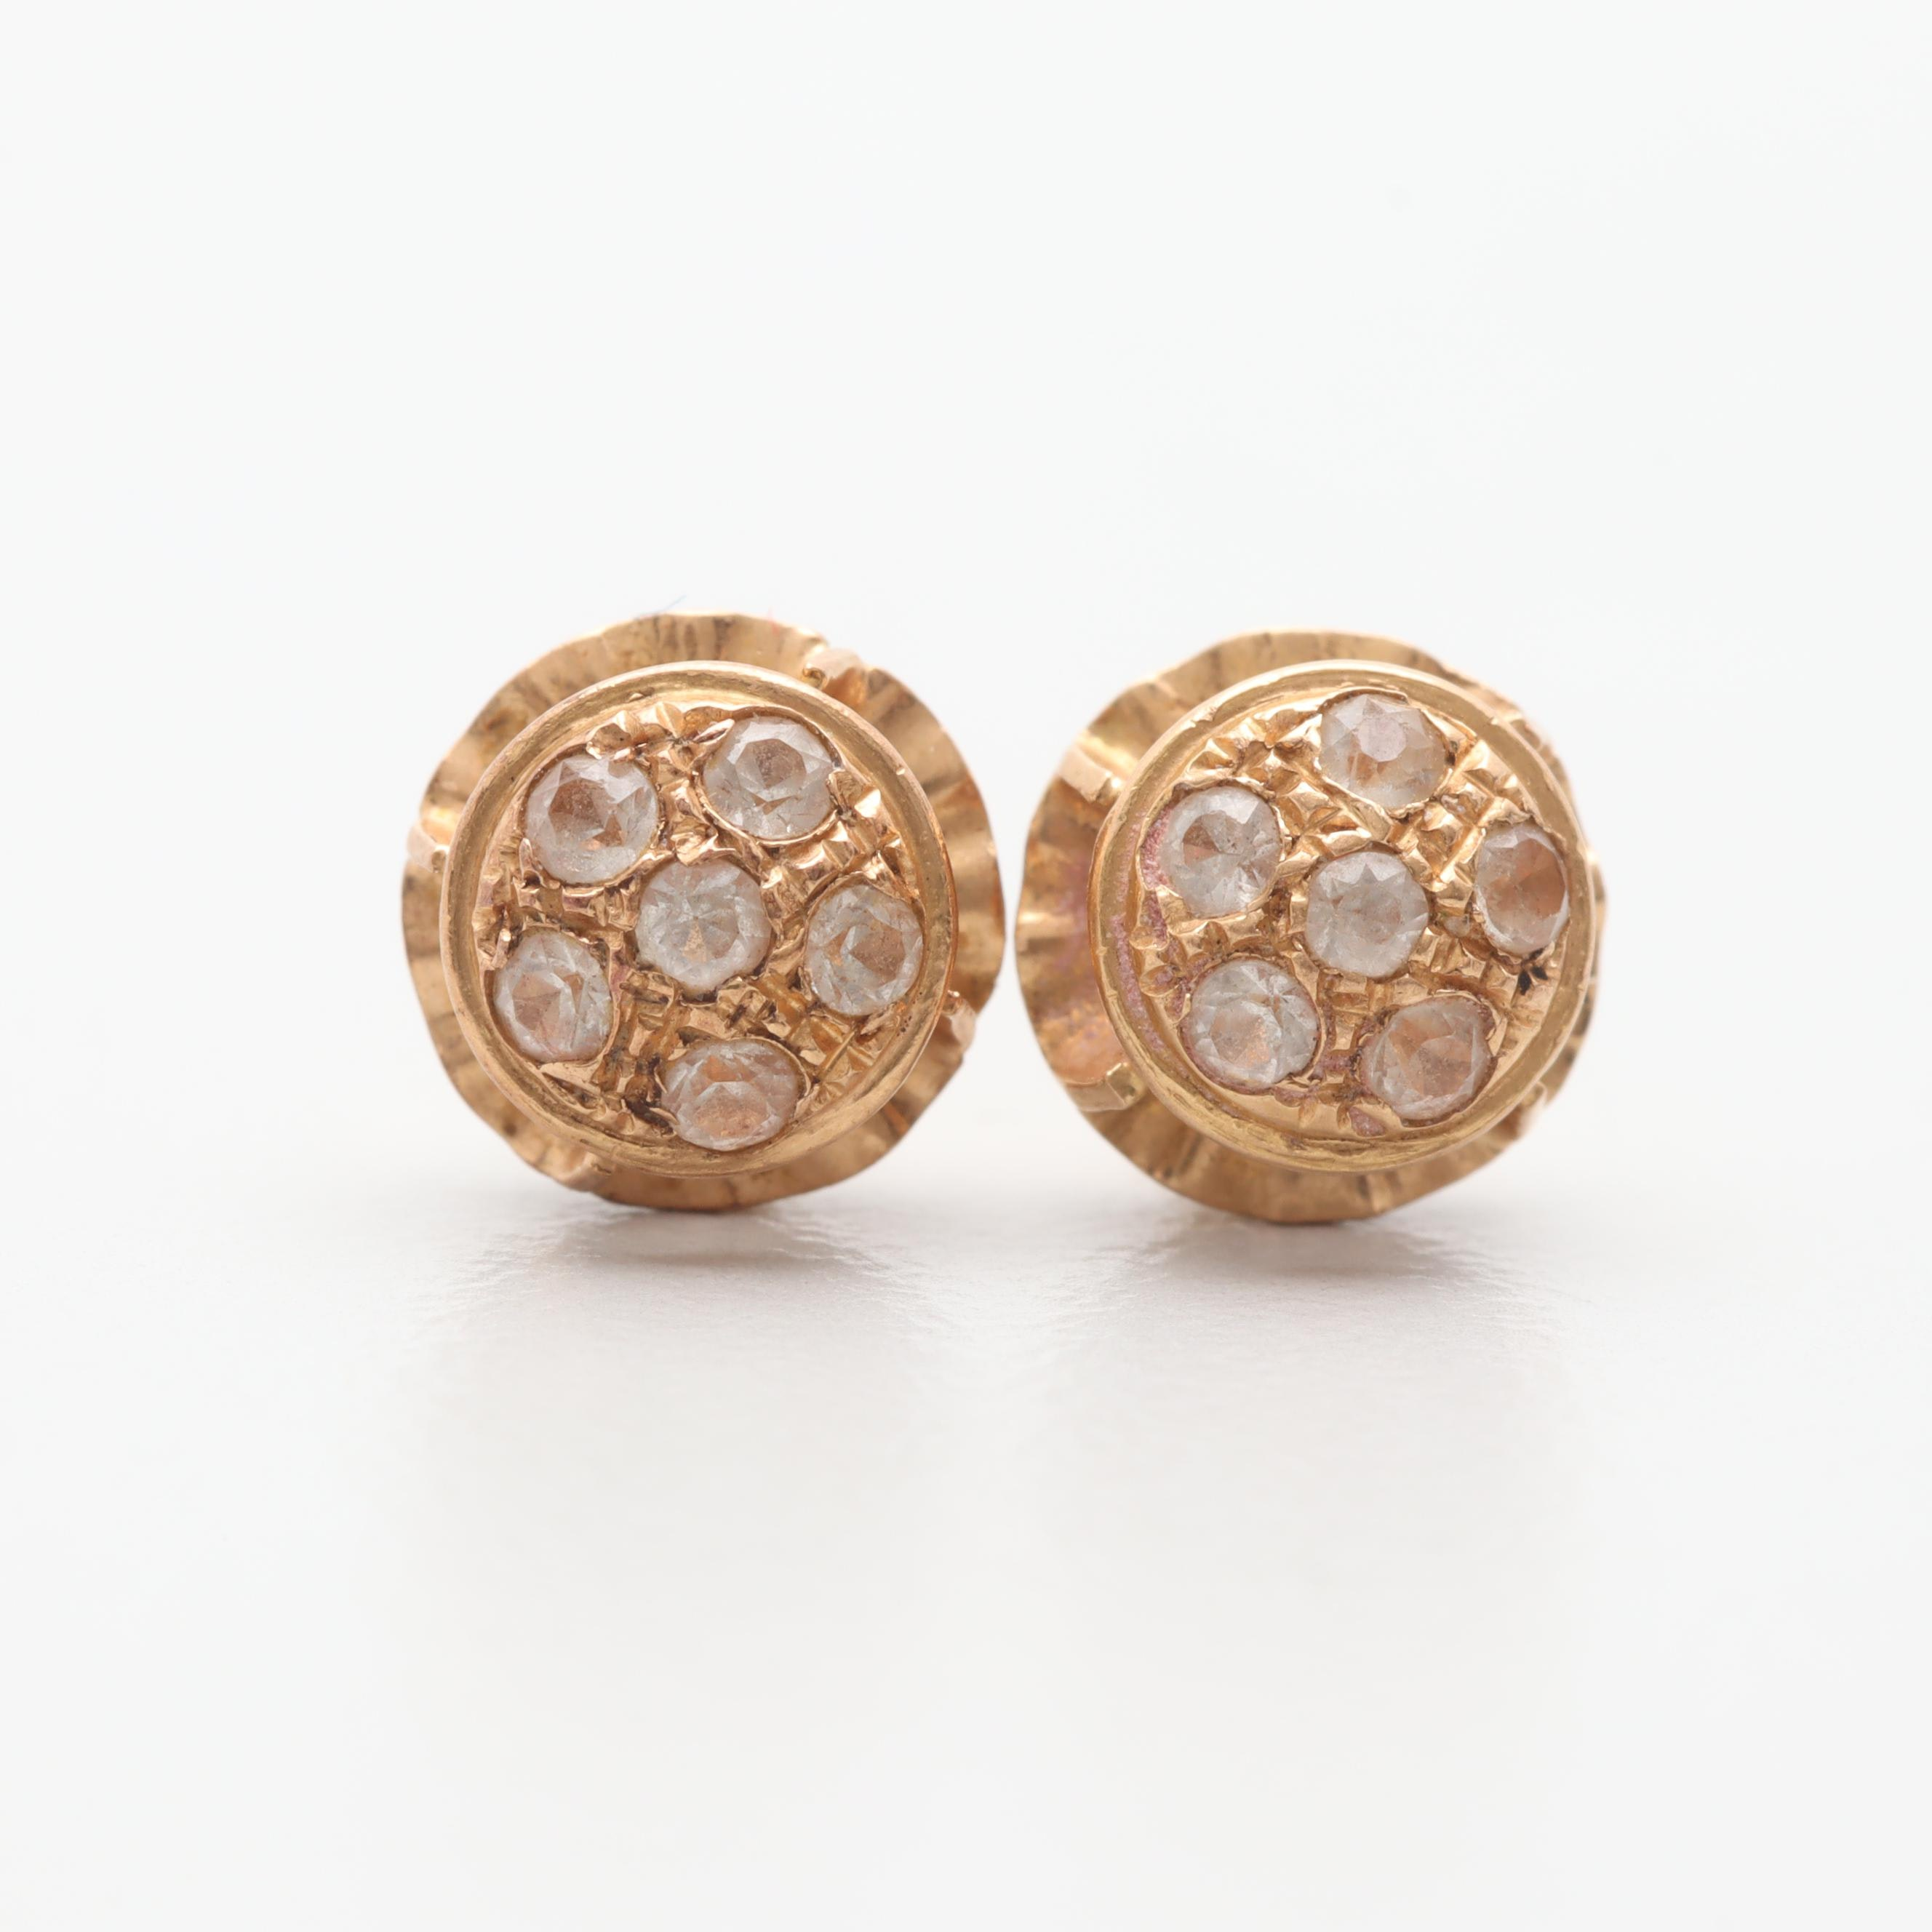 19K Yellow Gold Synthetic White Spinel Earrings